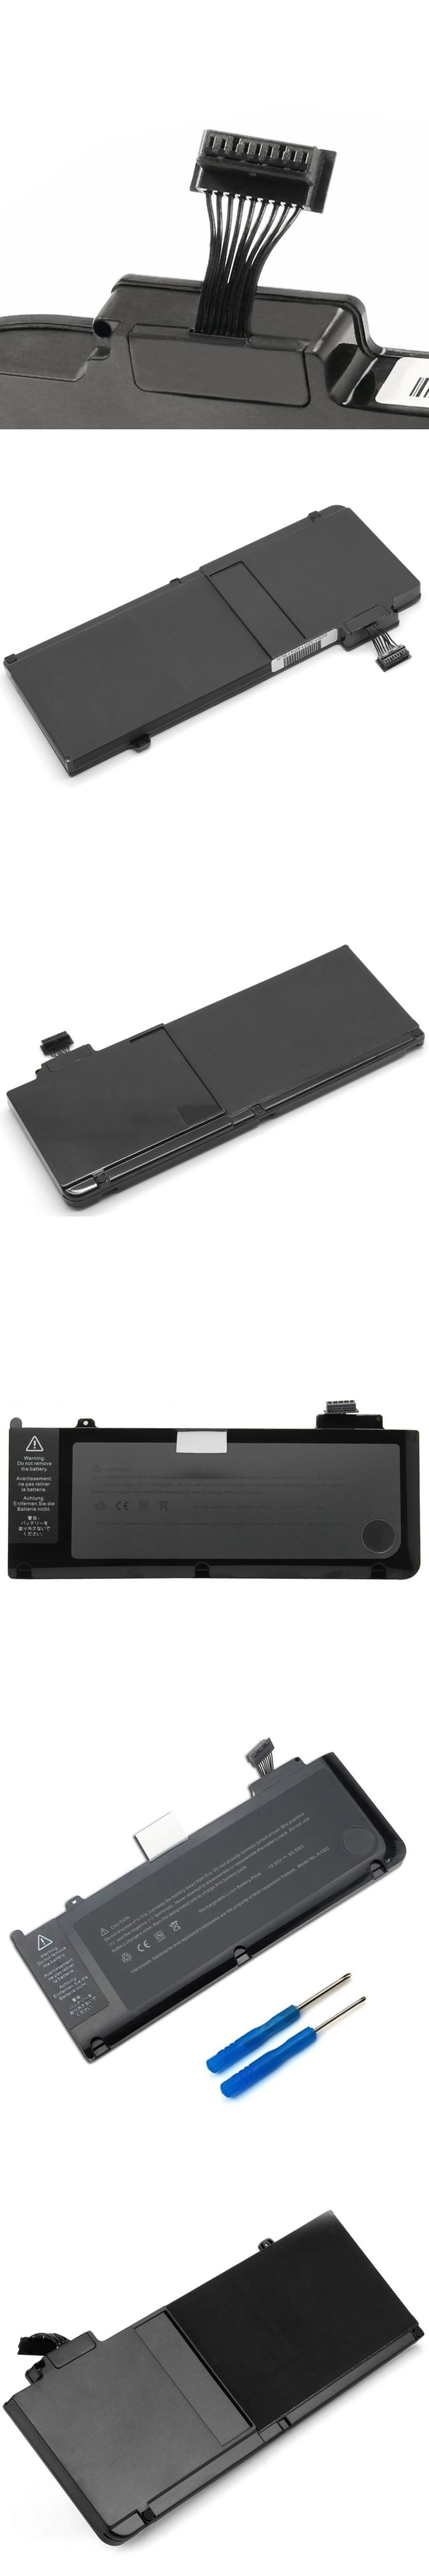 "NEW Laptop Battery for Apple MacBook Pro 13"" inch A1278 A1322 Early 2011 2012 Mid 2009 2010 Late 2011 020-6764-A 020-6765-A"